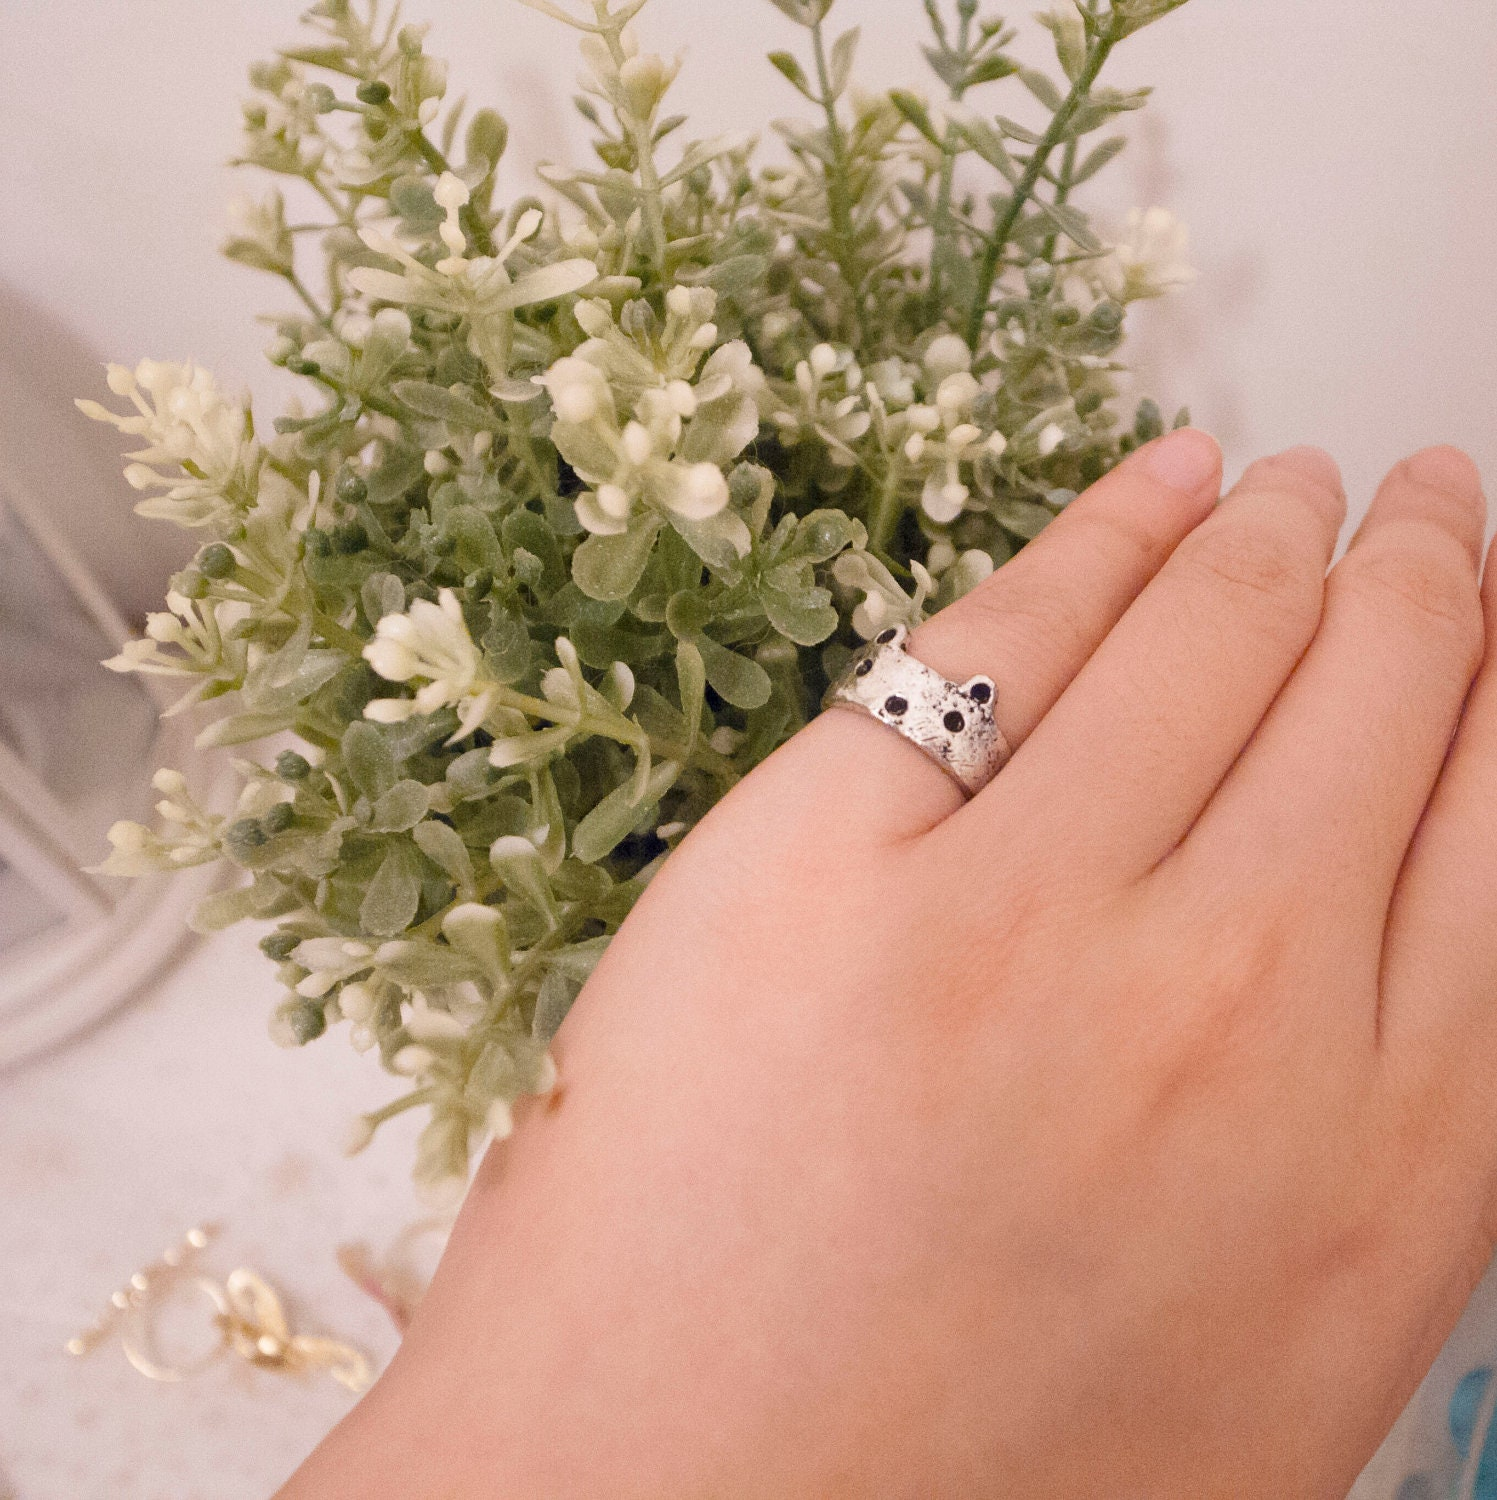 Bear Face Ring, Cat Face Ring, Adjustable Ring, small finger, forefinger, first finger, bronze color, silver color